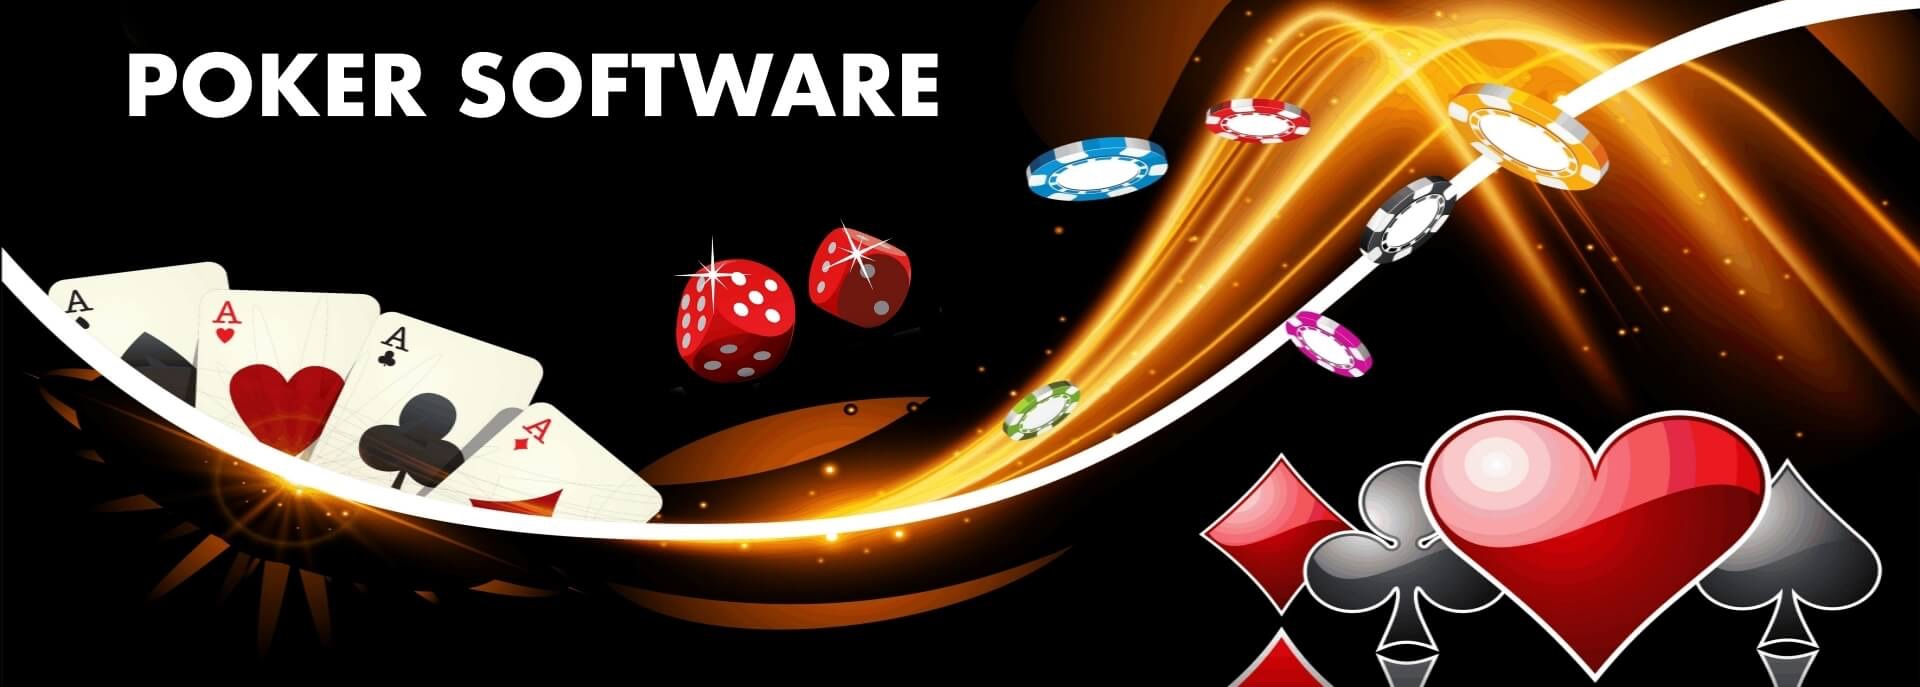 online poker software banner